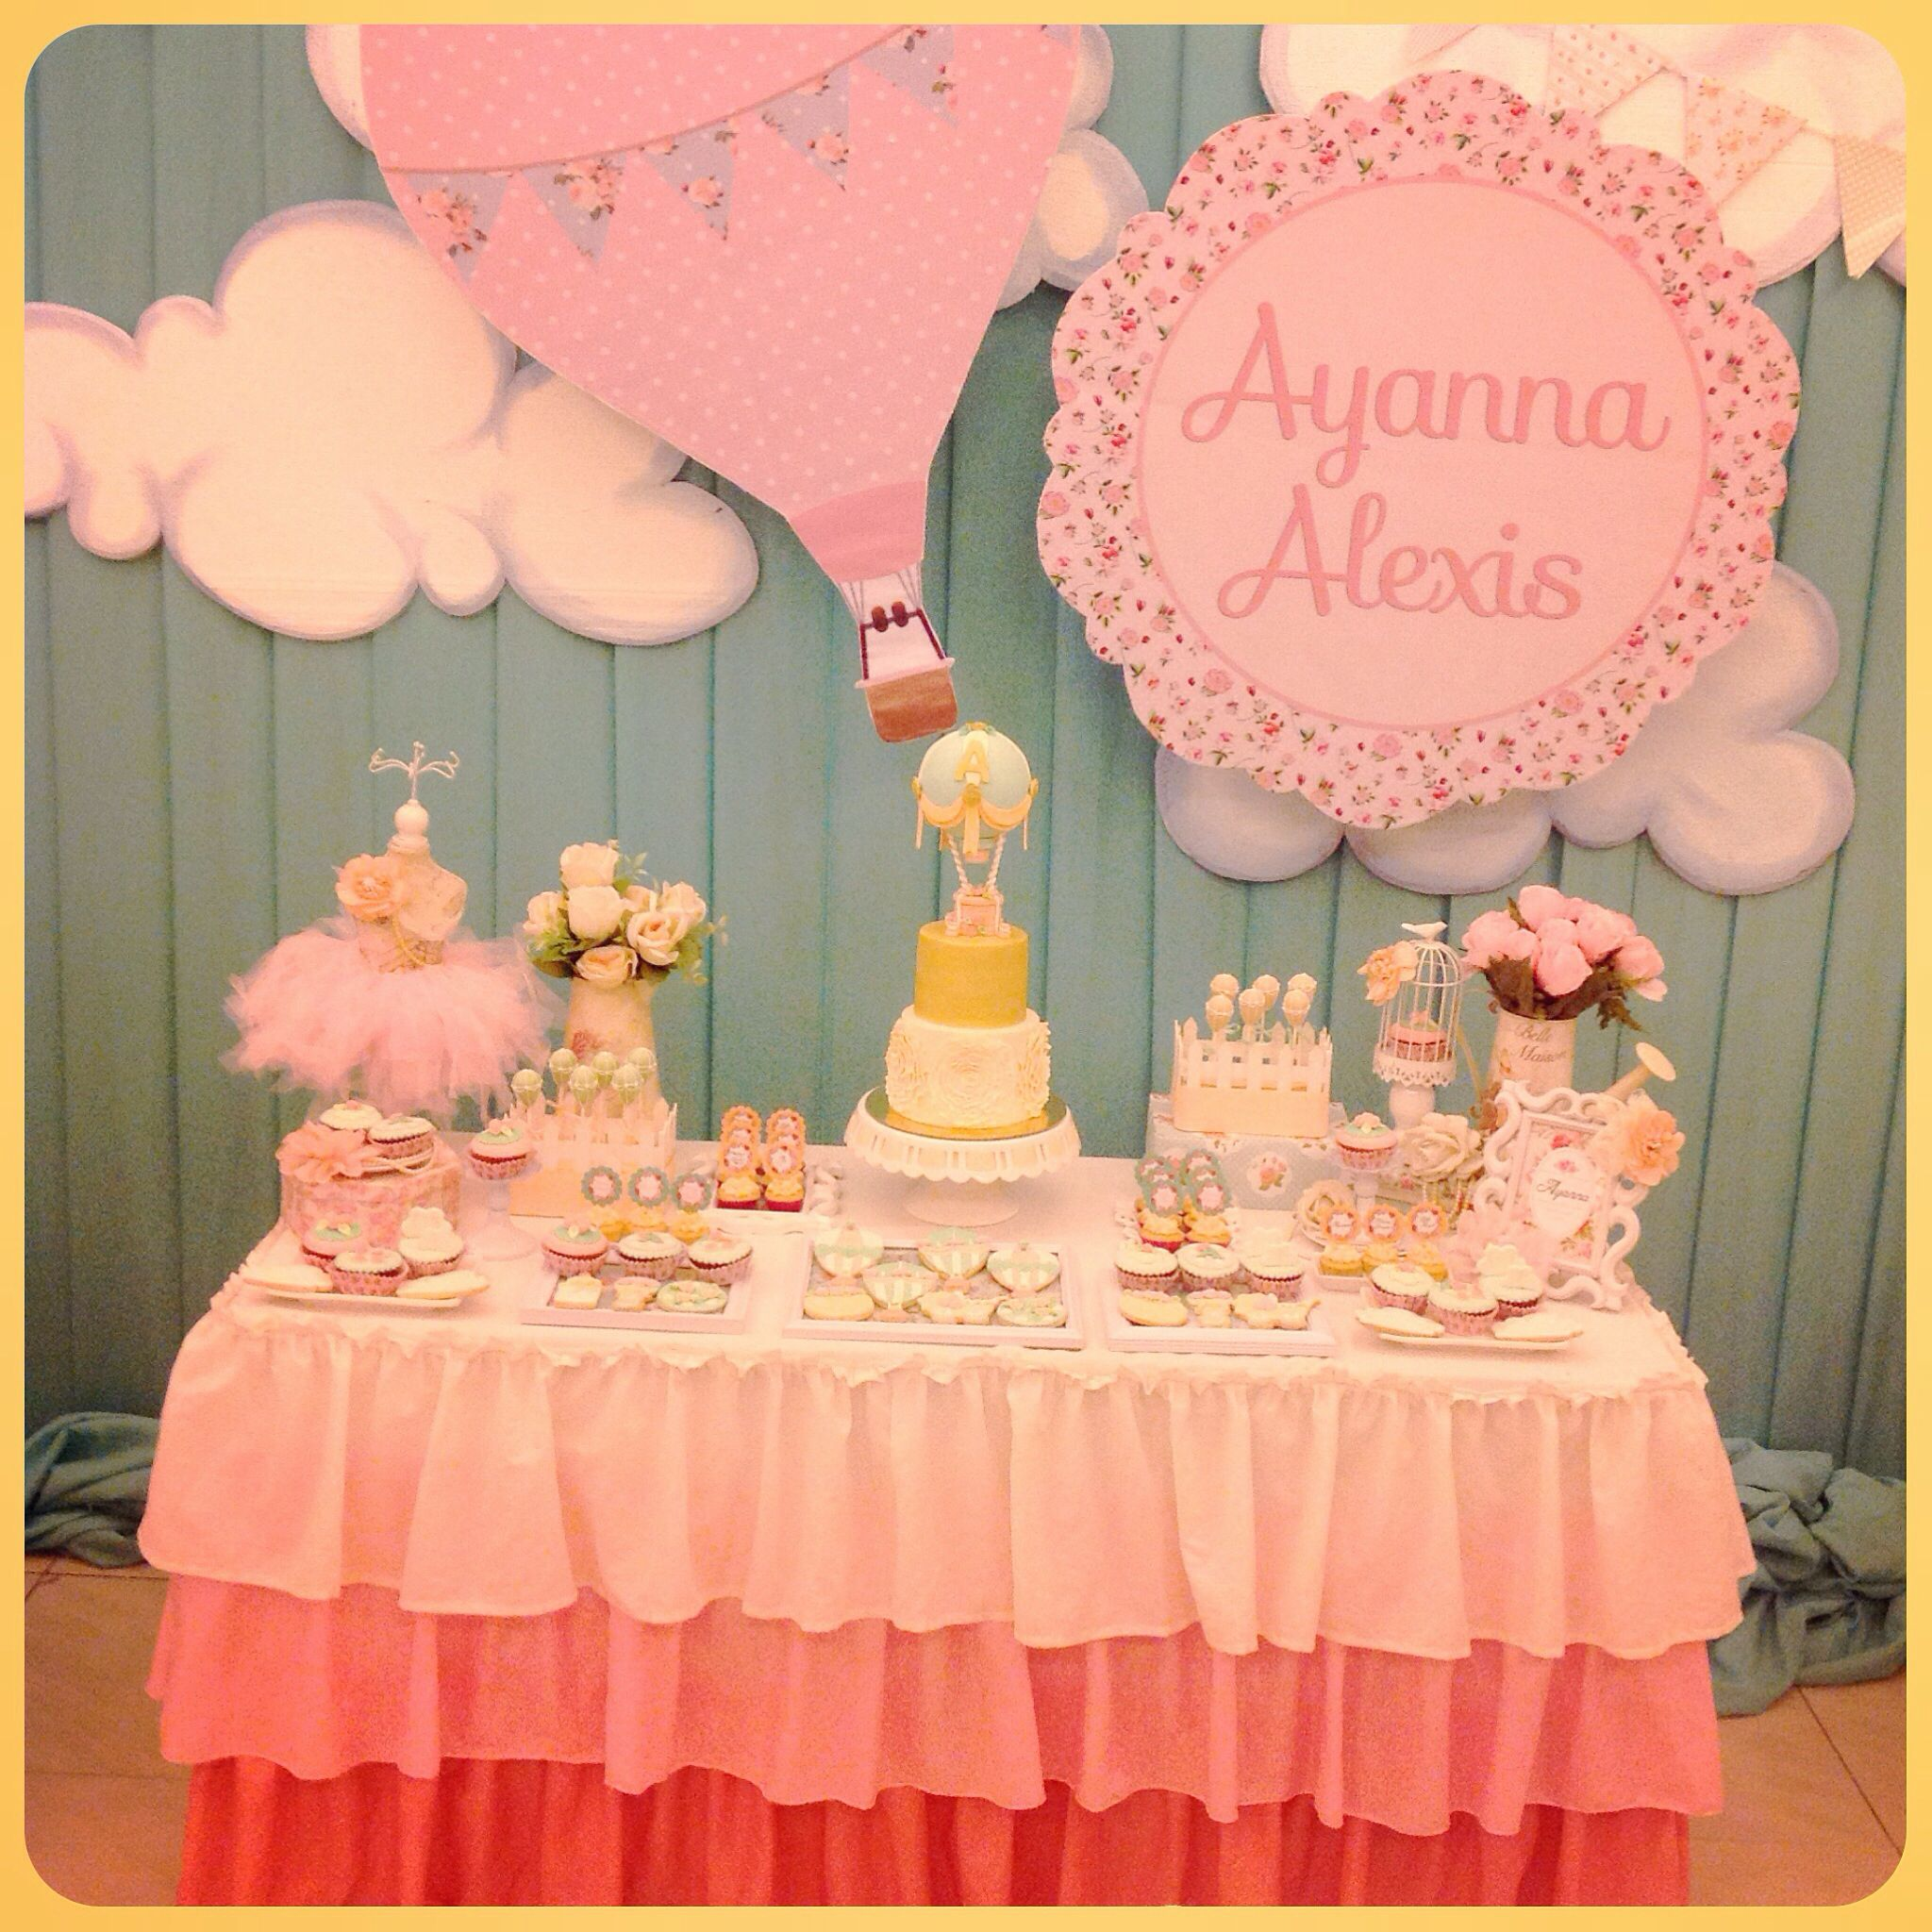 shabby chic hot airballoon dessert table set-up, cake, cupcakes